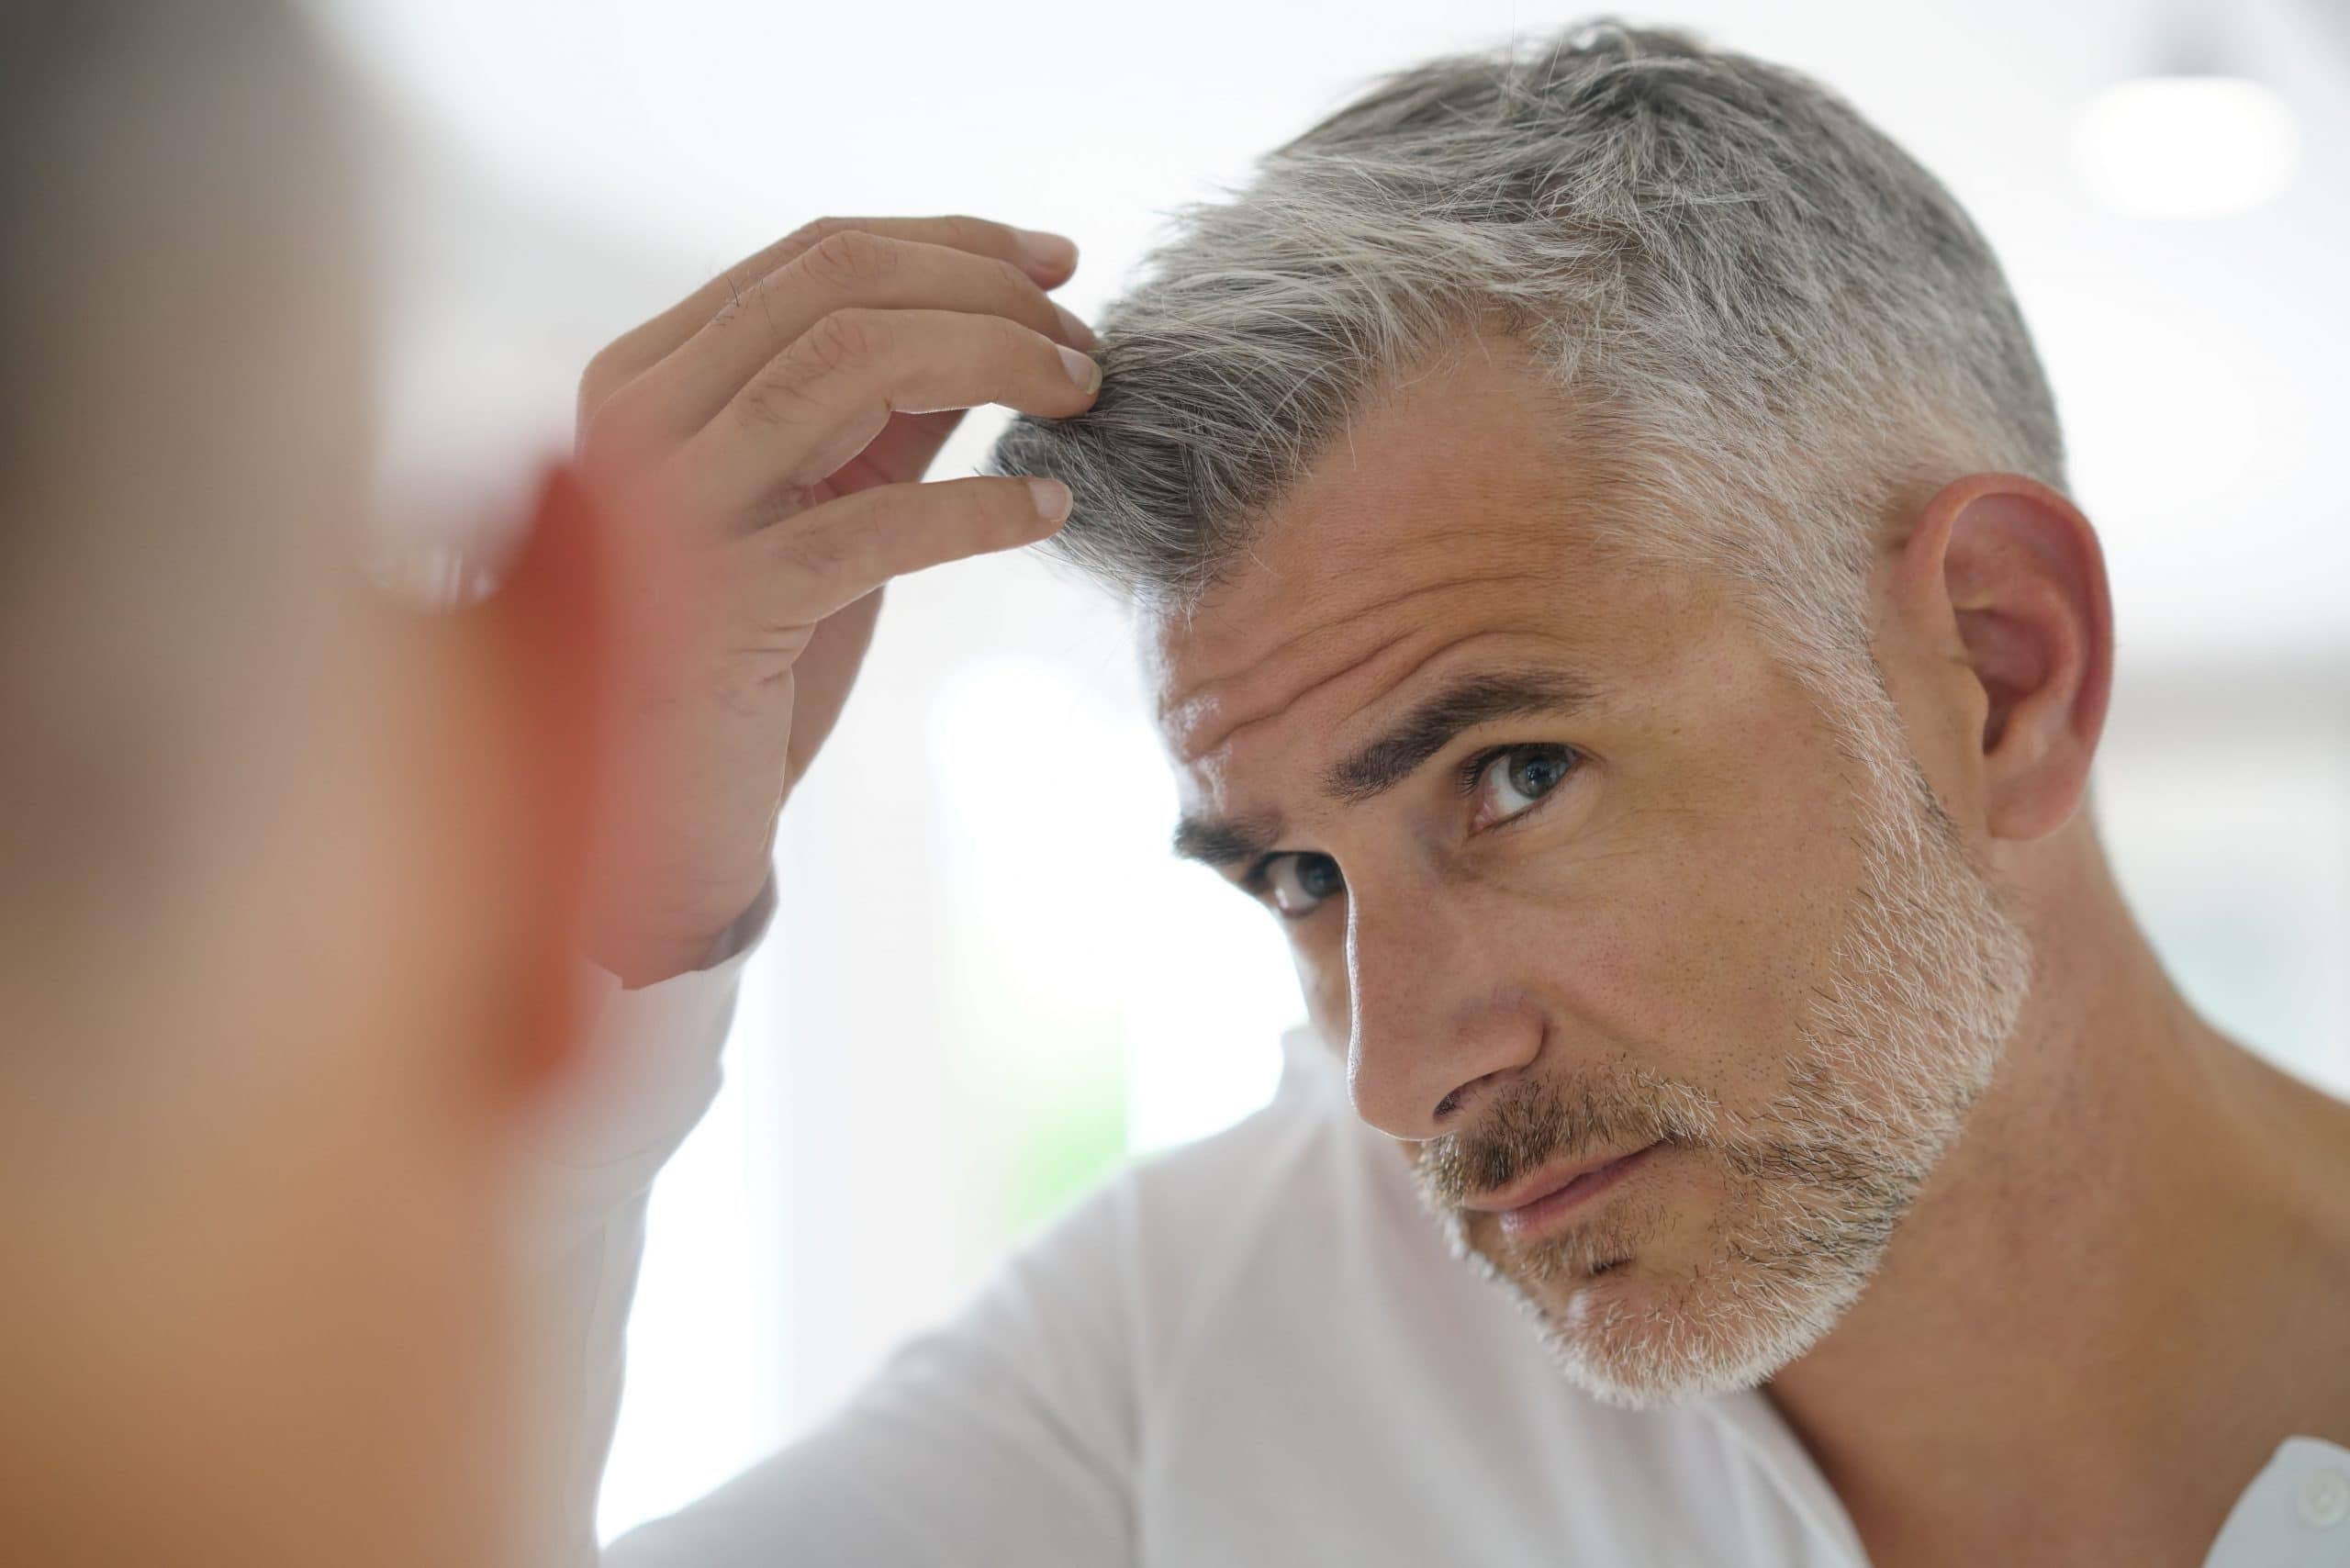 The Ultimate In Hair Loss & Restoration